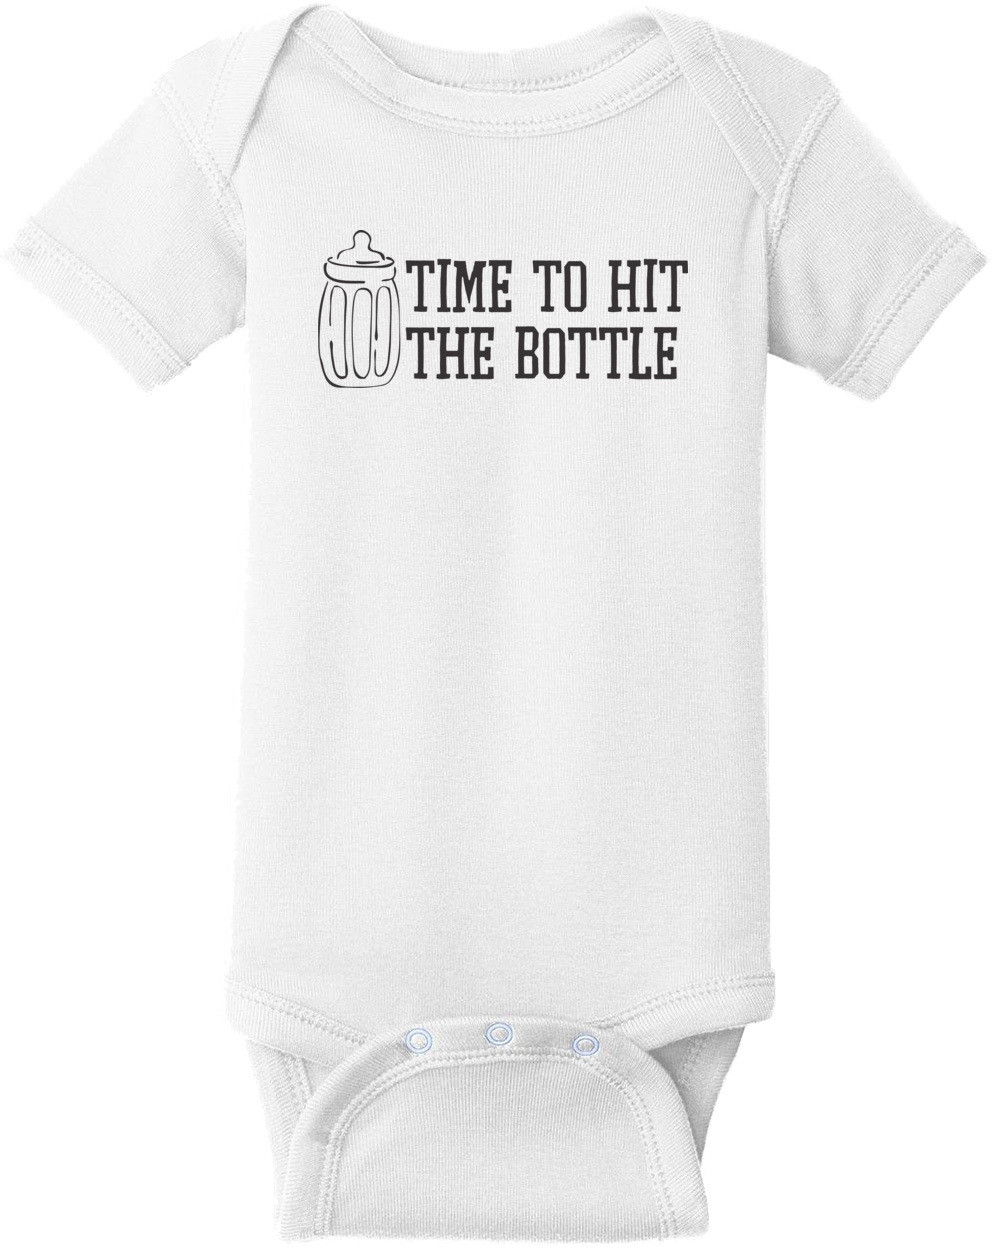 Time To Hit The Bottle - Funny Baby T-Shirt